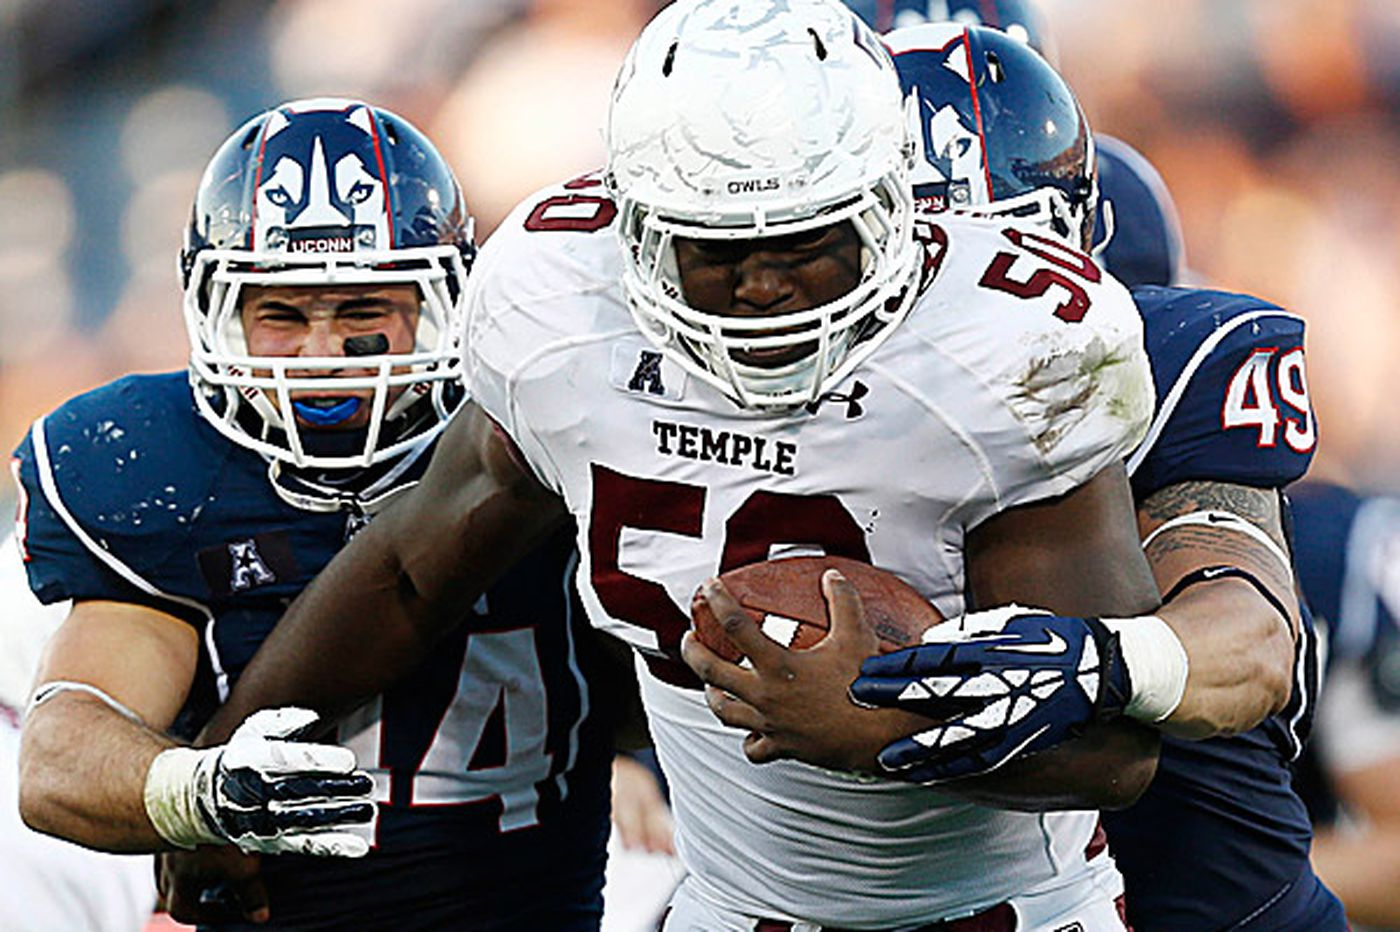 Temple's Martin-Oguike gets extra year of eligibility